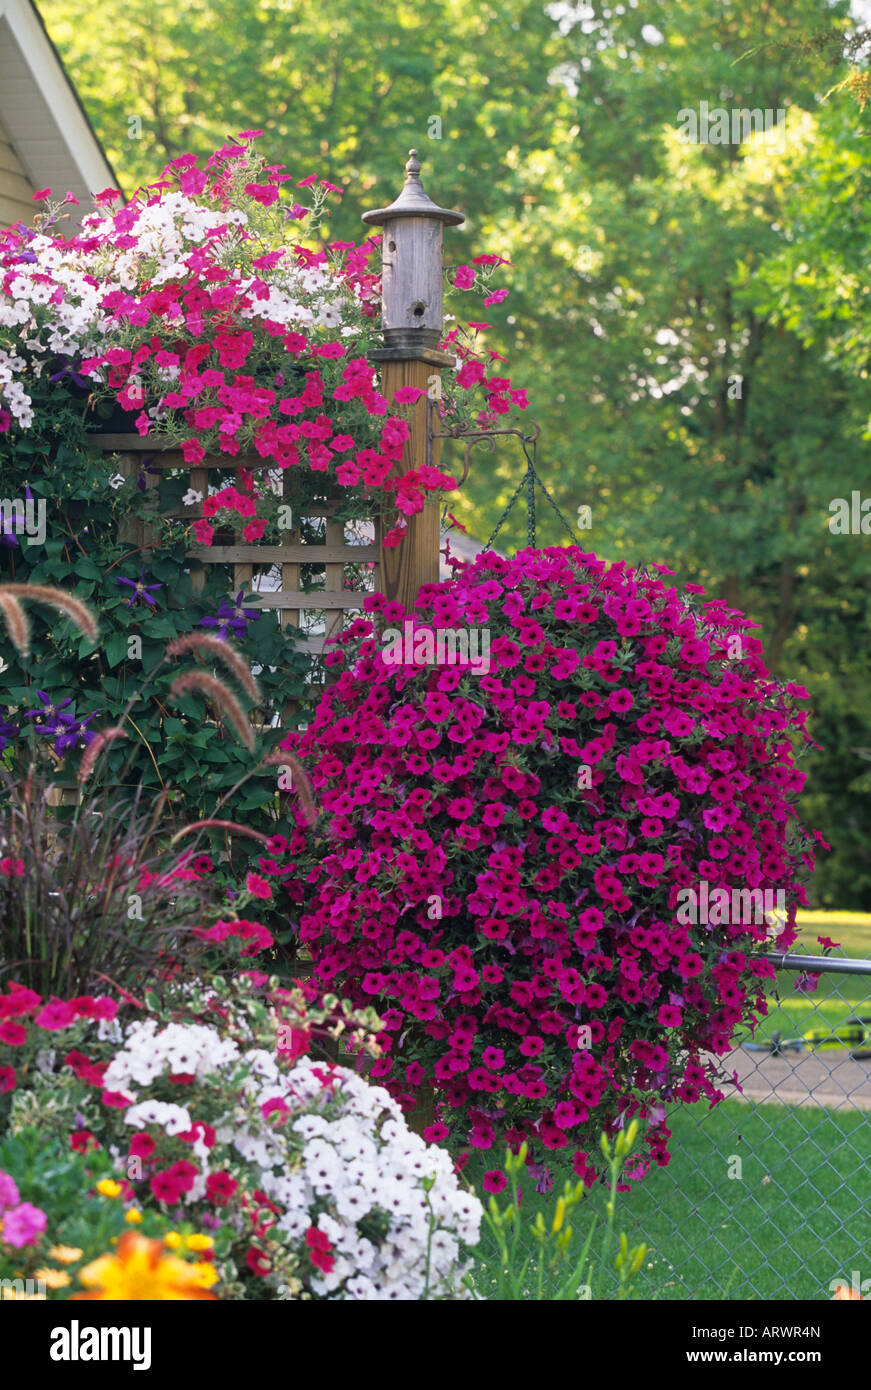 Hanging Baskets Of Wave And Tidal Wave Petunias And Climbing